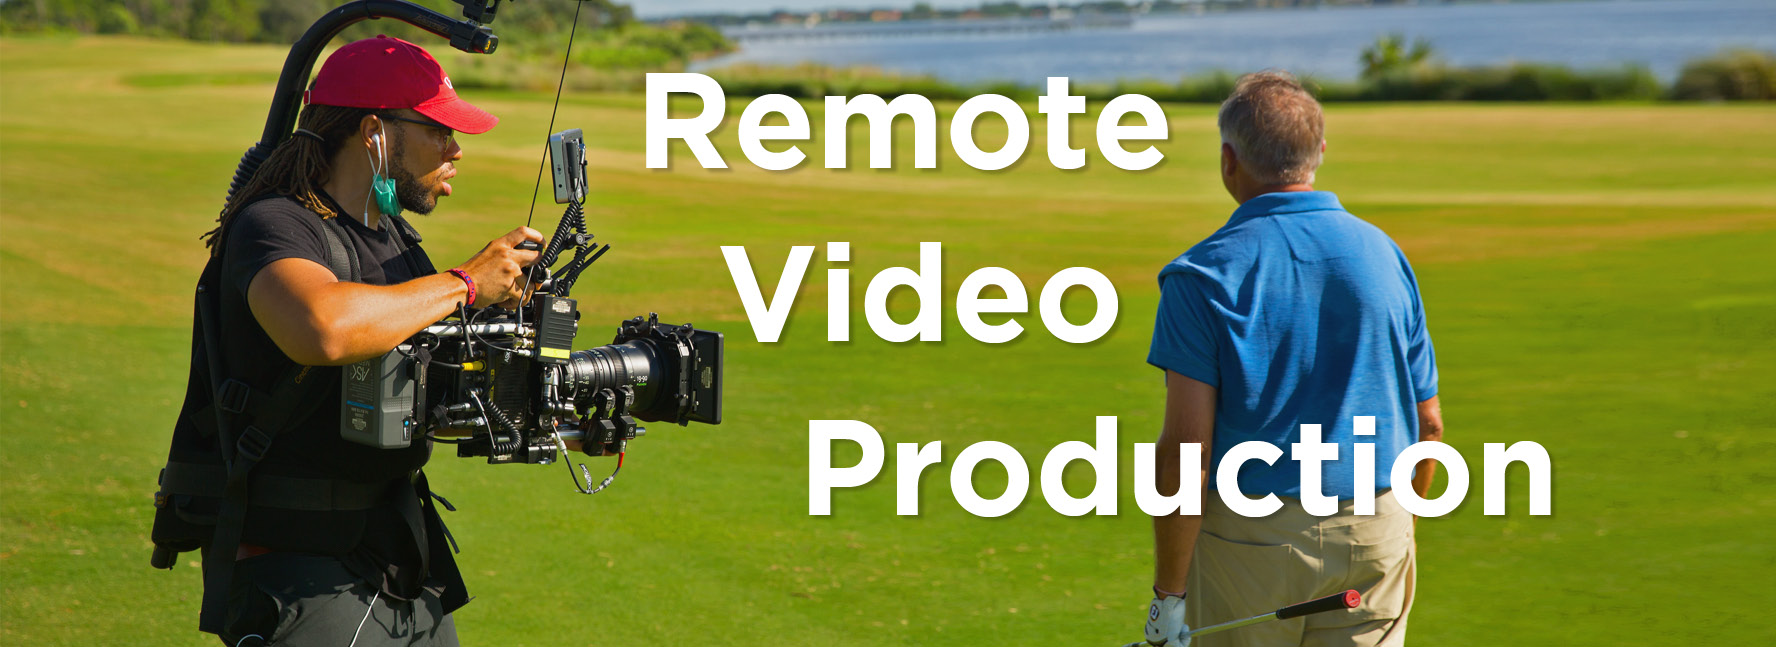 NECESSARY AND BENEFICIAL: WHY A REMOTE VIDEO PRODUCTION MAY BE THE BEST OPTION